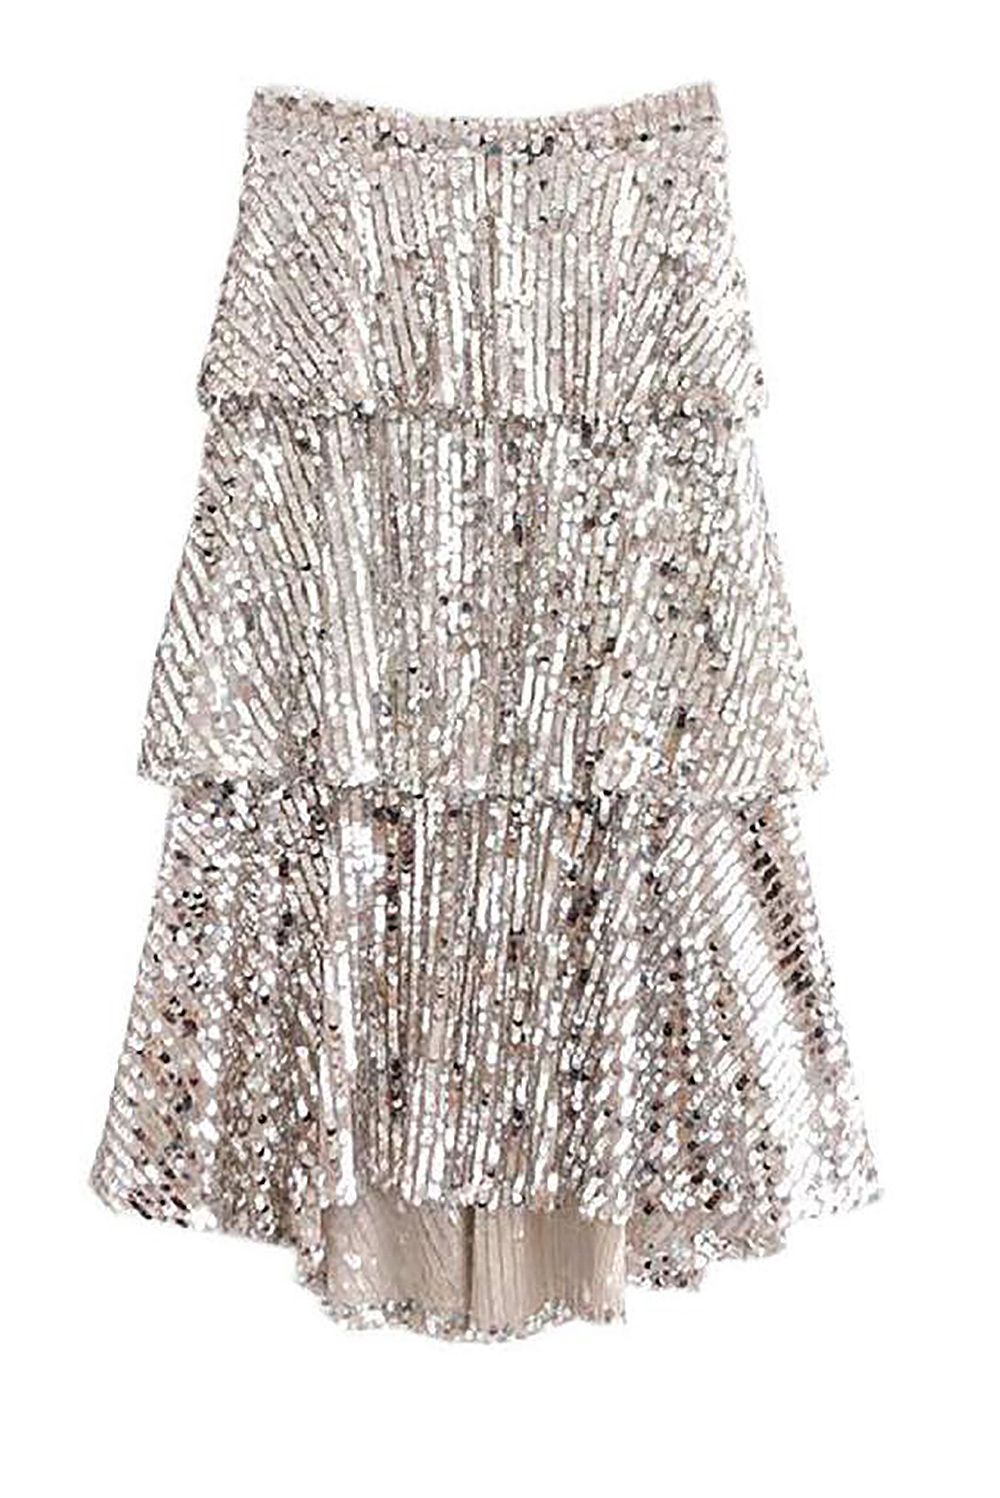 A Sequin Midi Skirt Good Night Macaroon goodnightmacaroon.co $67.00 SHOP IT A flashy sequin skirt you'll want to wear for all the rooftop birthday parties and bridal showers you'll attend this spring. The silver sparkles make this piece daytime appropriate, though you can easily transform it with a pair of black heels and a silk black cami for nighttime festivities.